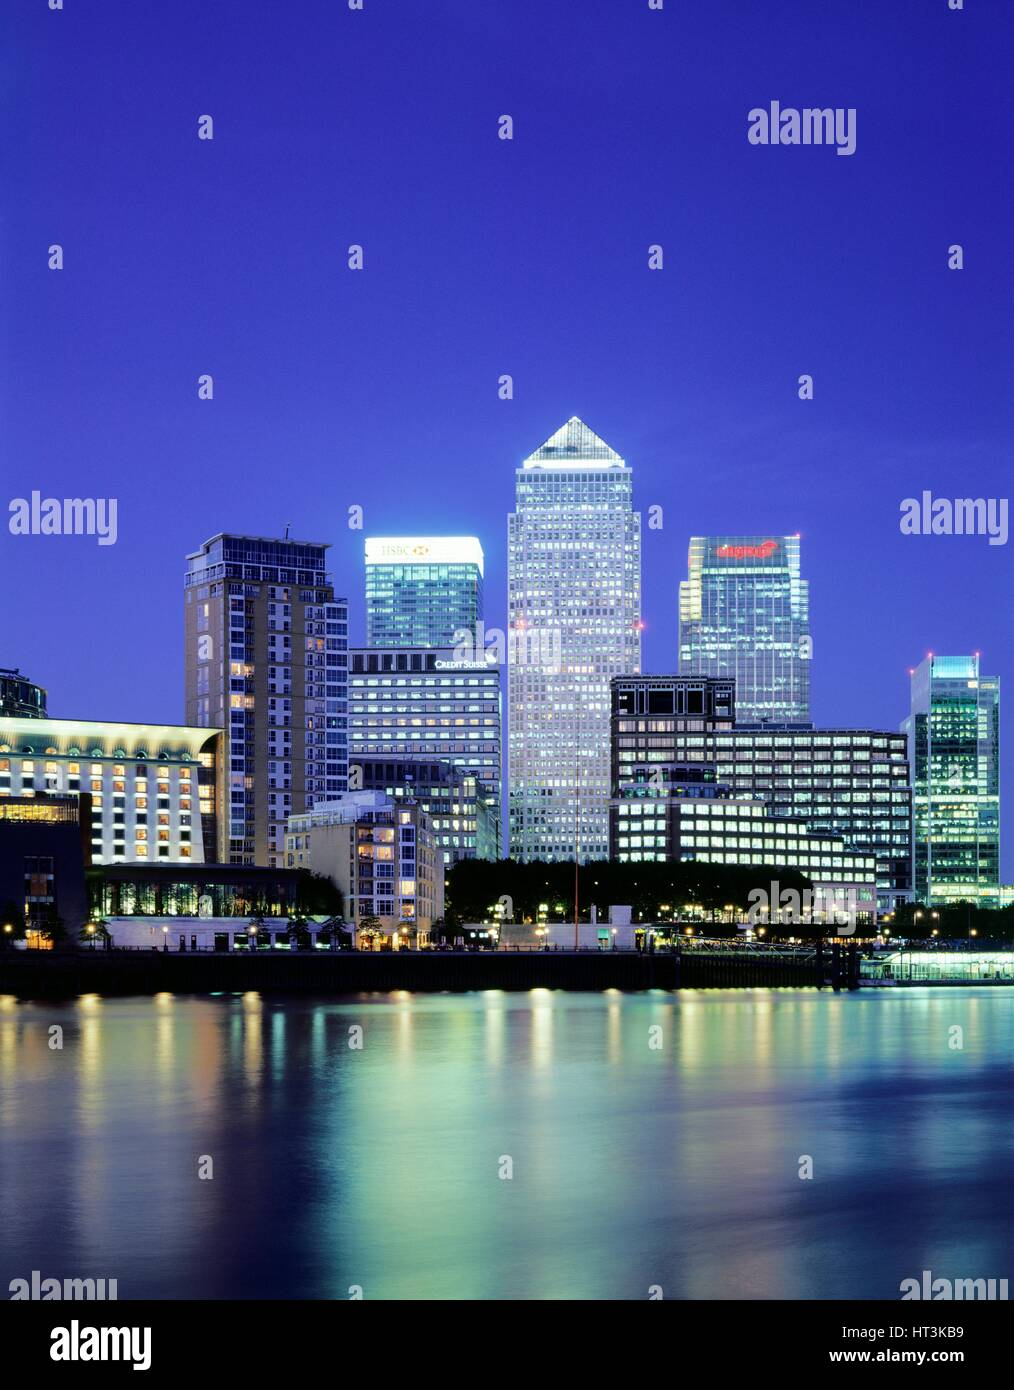 Canary Wharf at night, c1990-2010. Artist: Unknown. - Stock Image